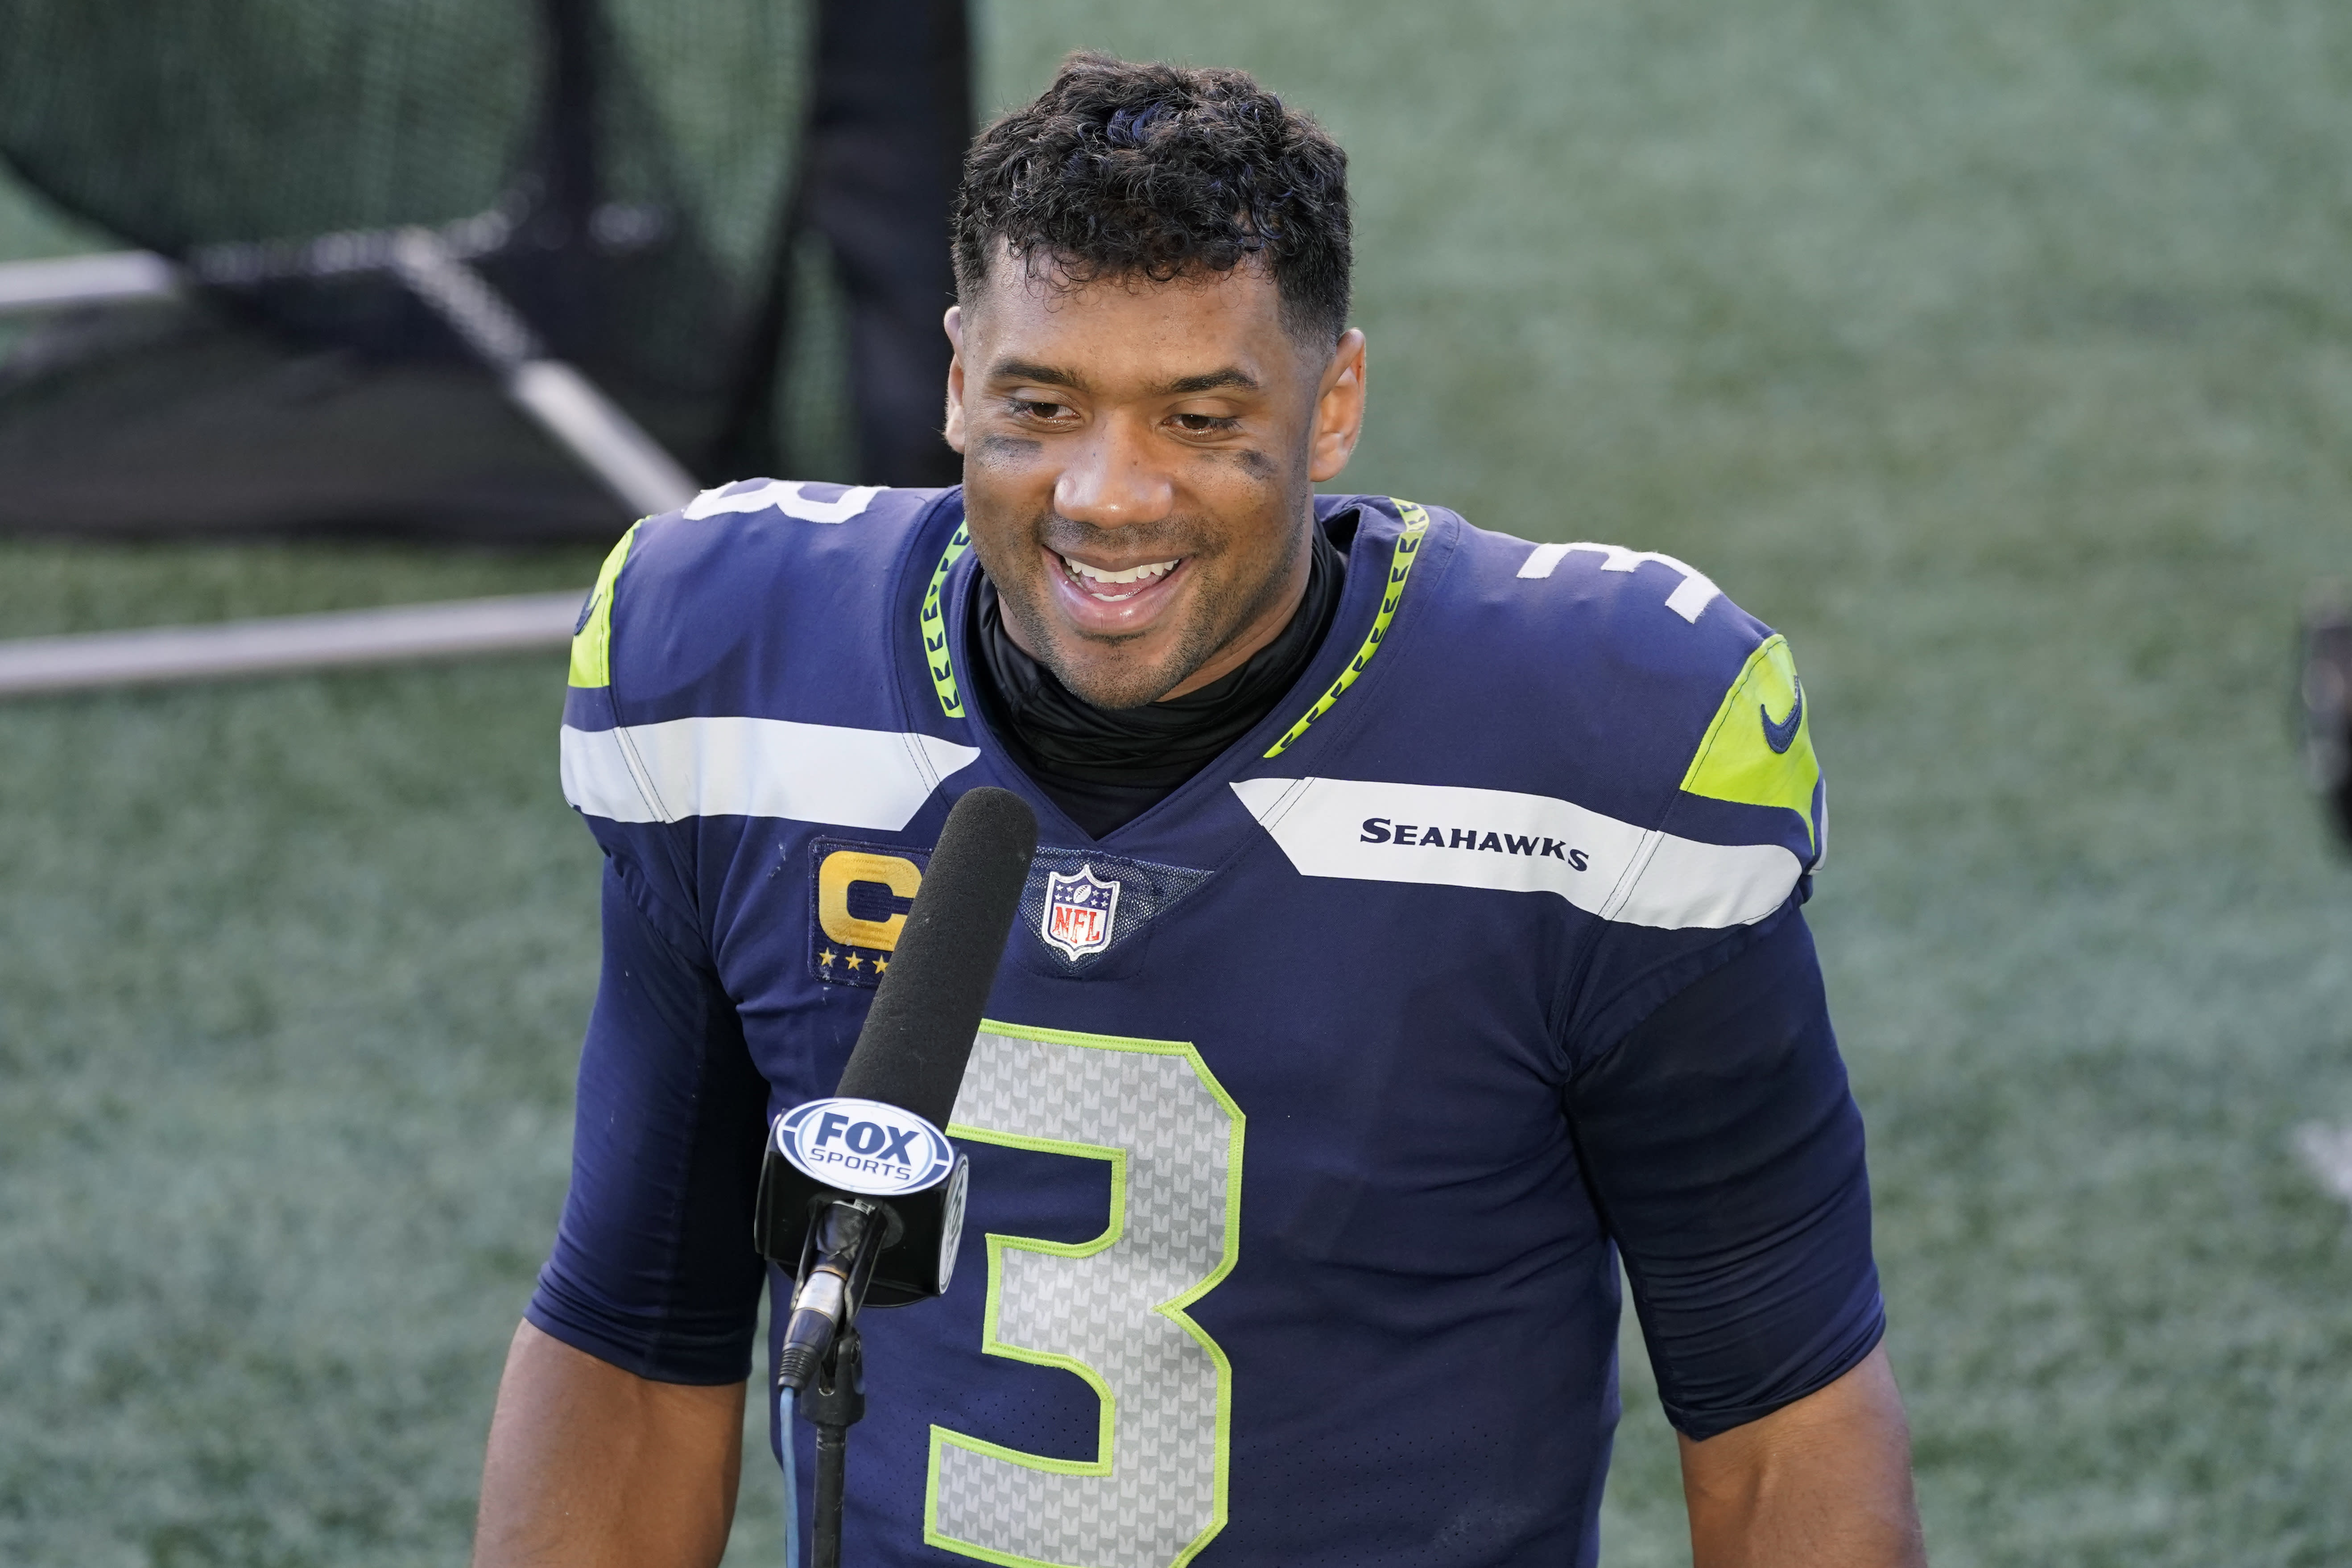 Seattle Seahawks quarterback Russell Wilson smiles during a post-game interview after an NFL football game against the Dallas Cowboys, Sunday, Sept. 27, 2020, in Seattle. The Seahawks won 38-31. (AP Photo/Elaine Thompson)